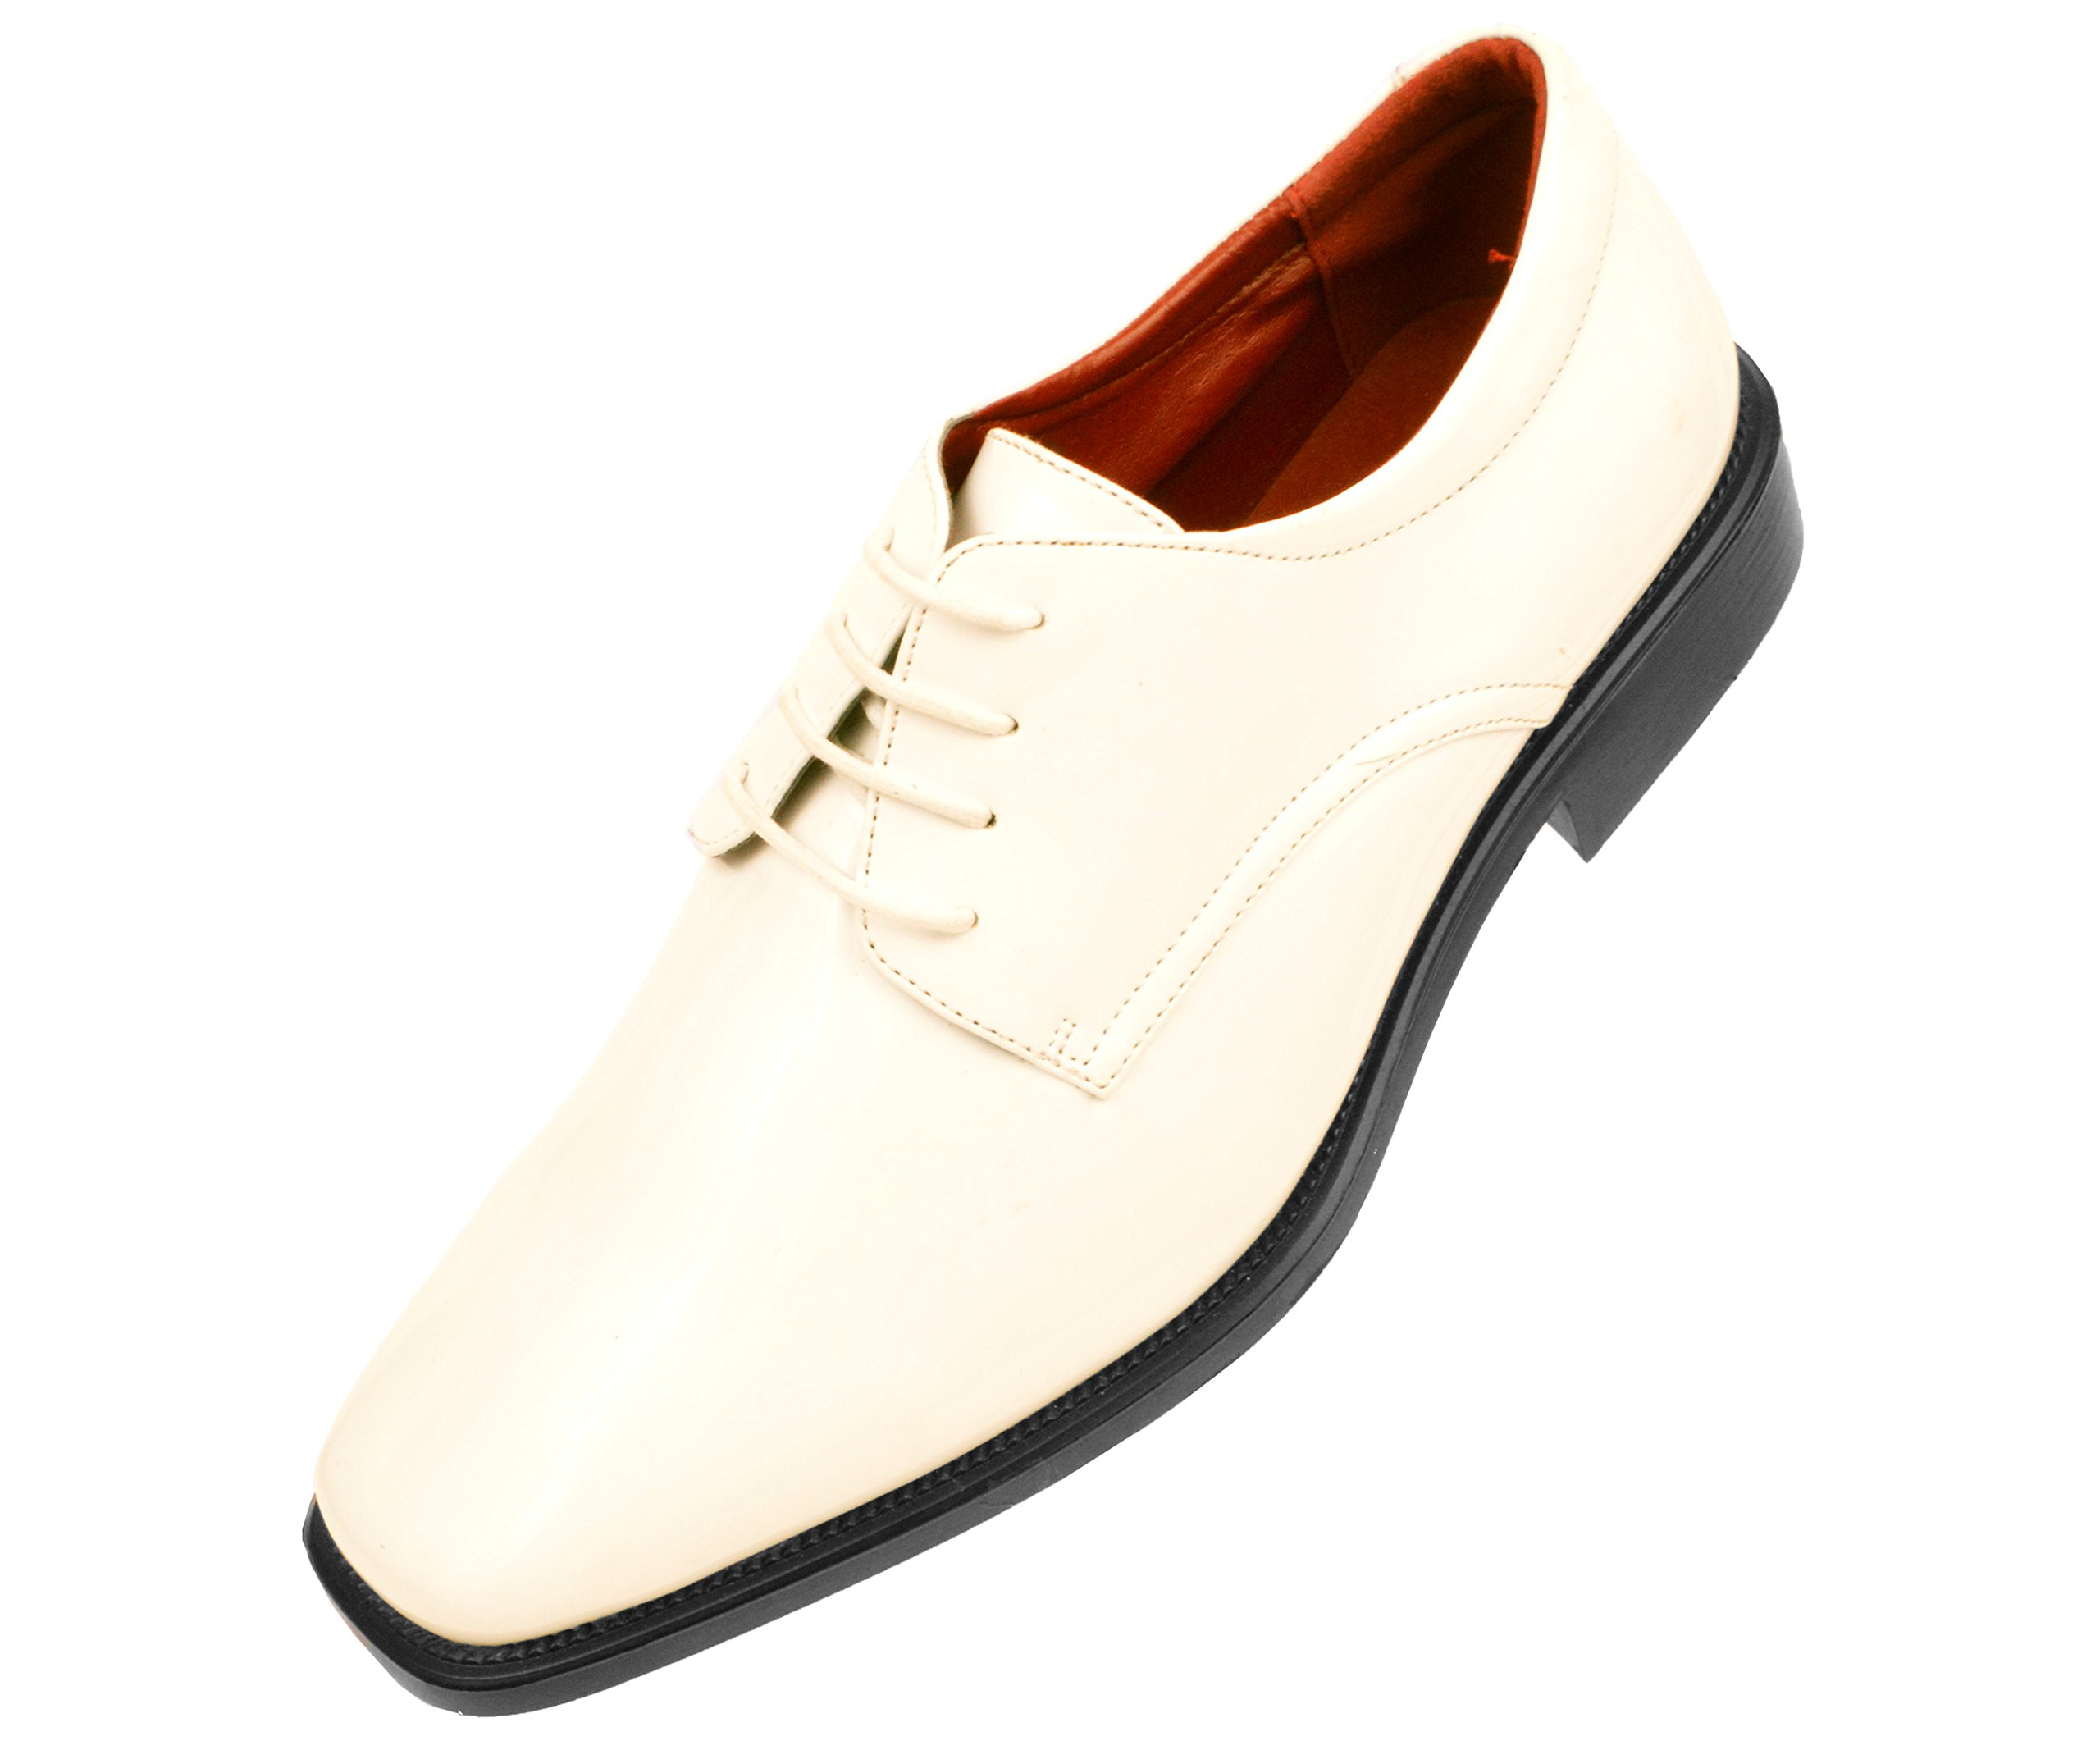 Amali Mens Classic Patent Plain Toe Tuxedo Oxford Dress Shoe Style 2851